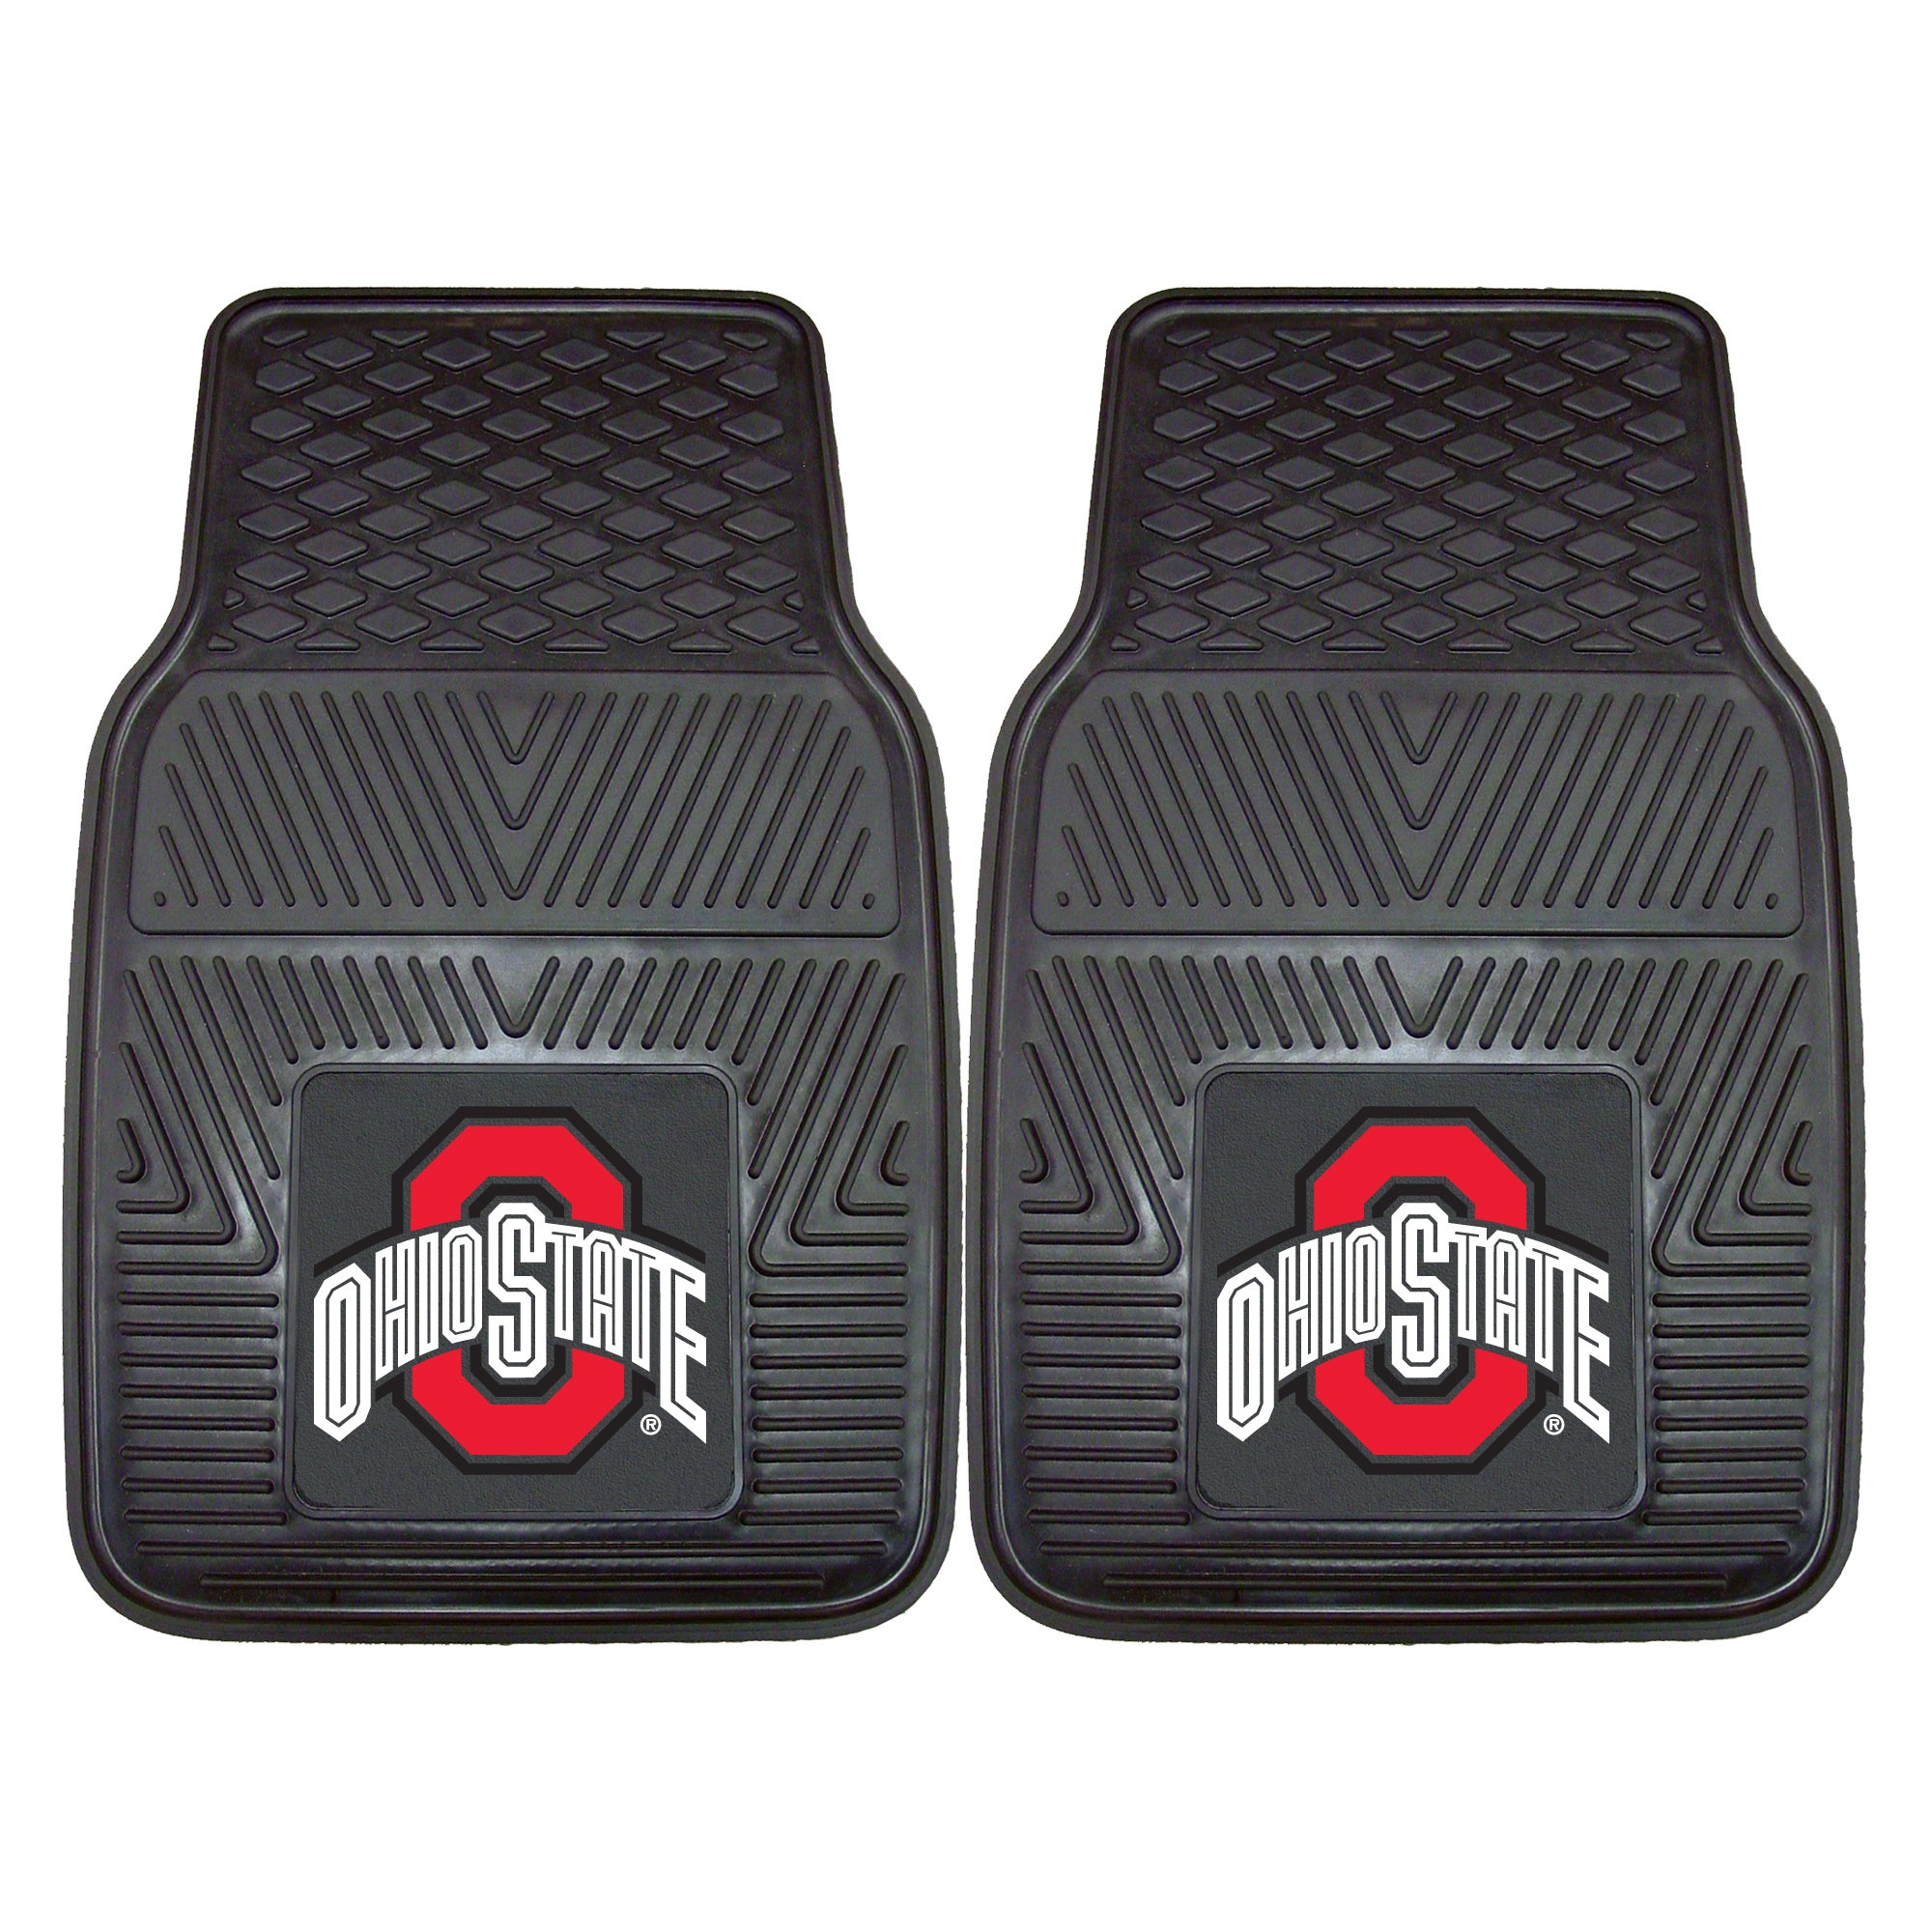 Fanmats Ohio State 2-piece Vinyl Car Mats at Sears.com